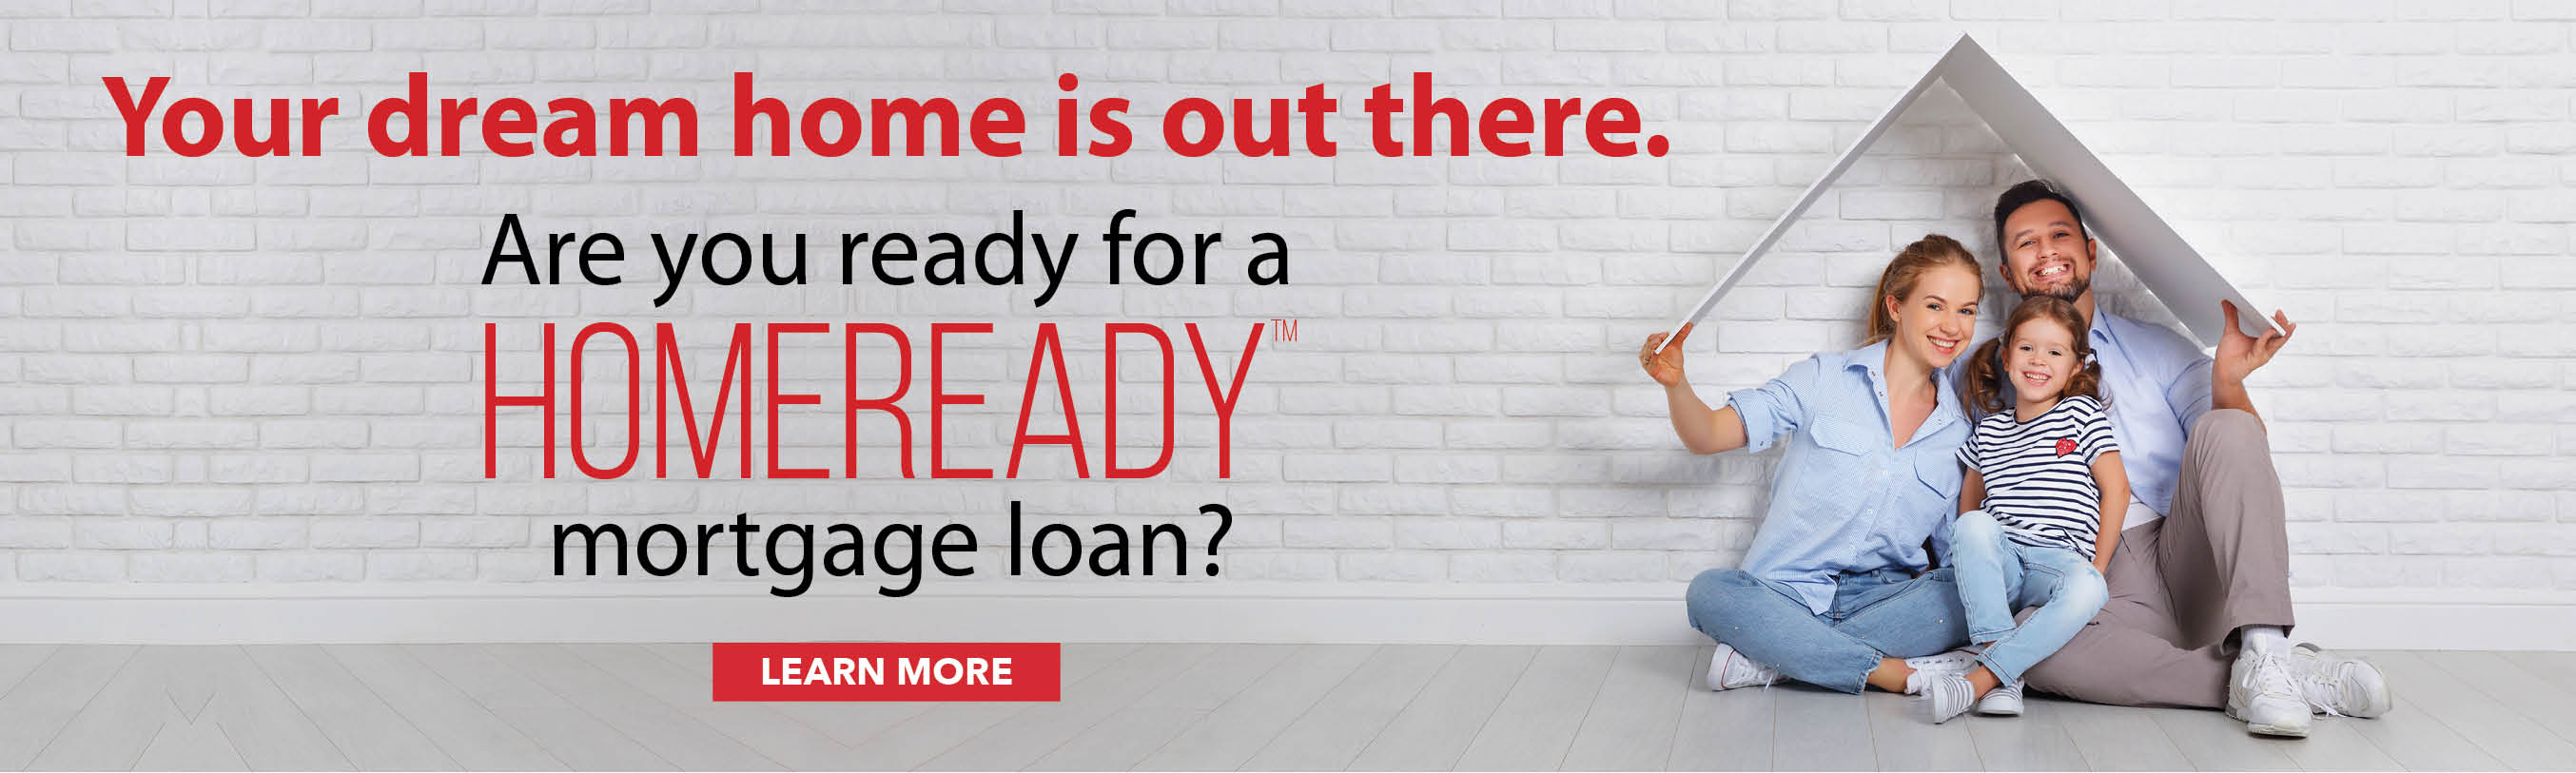 Your dream home is out there. Are you ready for a Homeready mortgage loan? Learn more